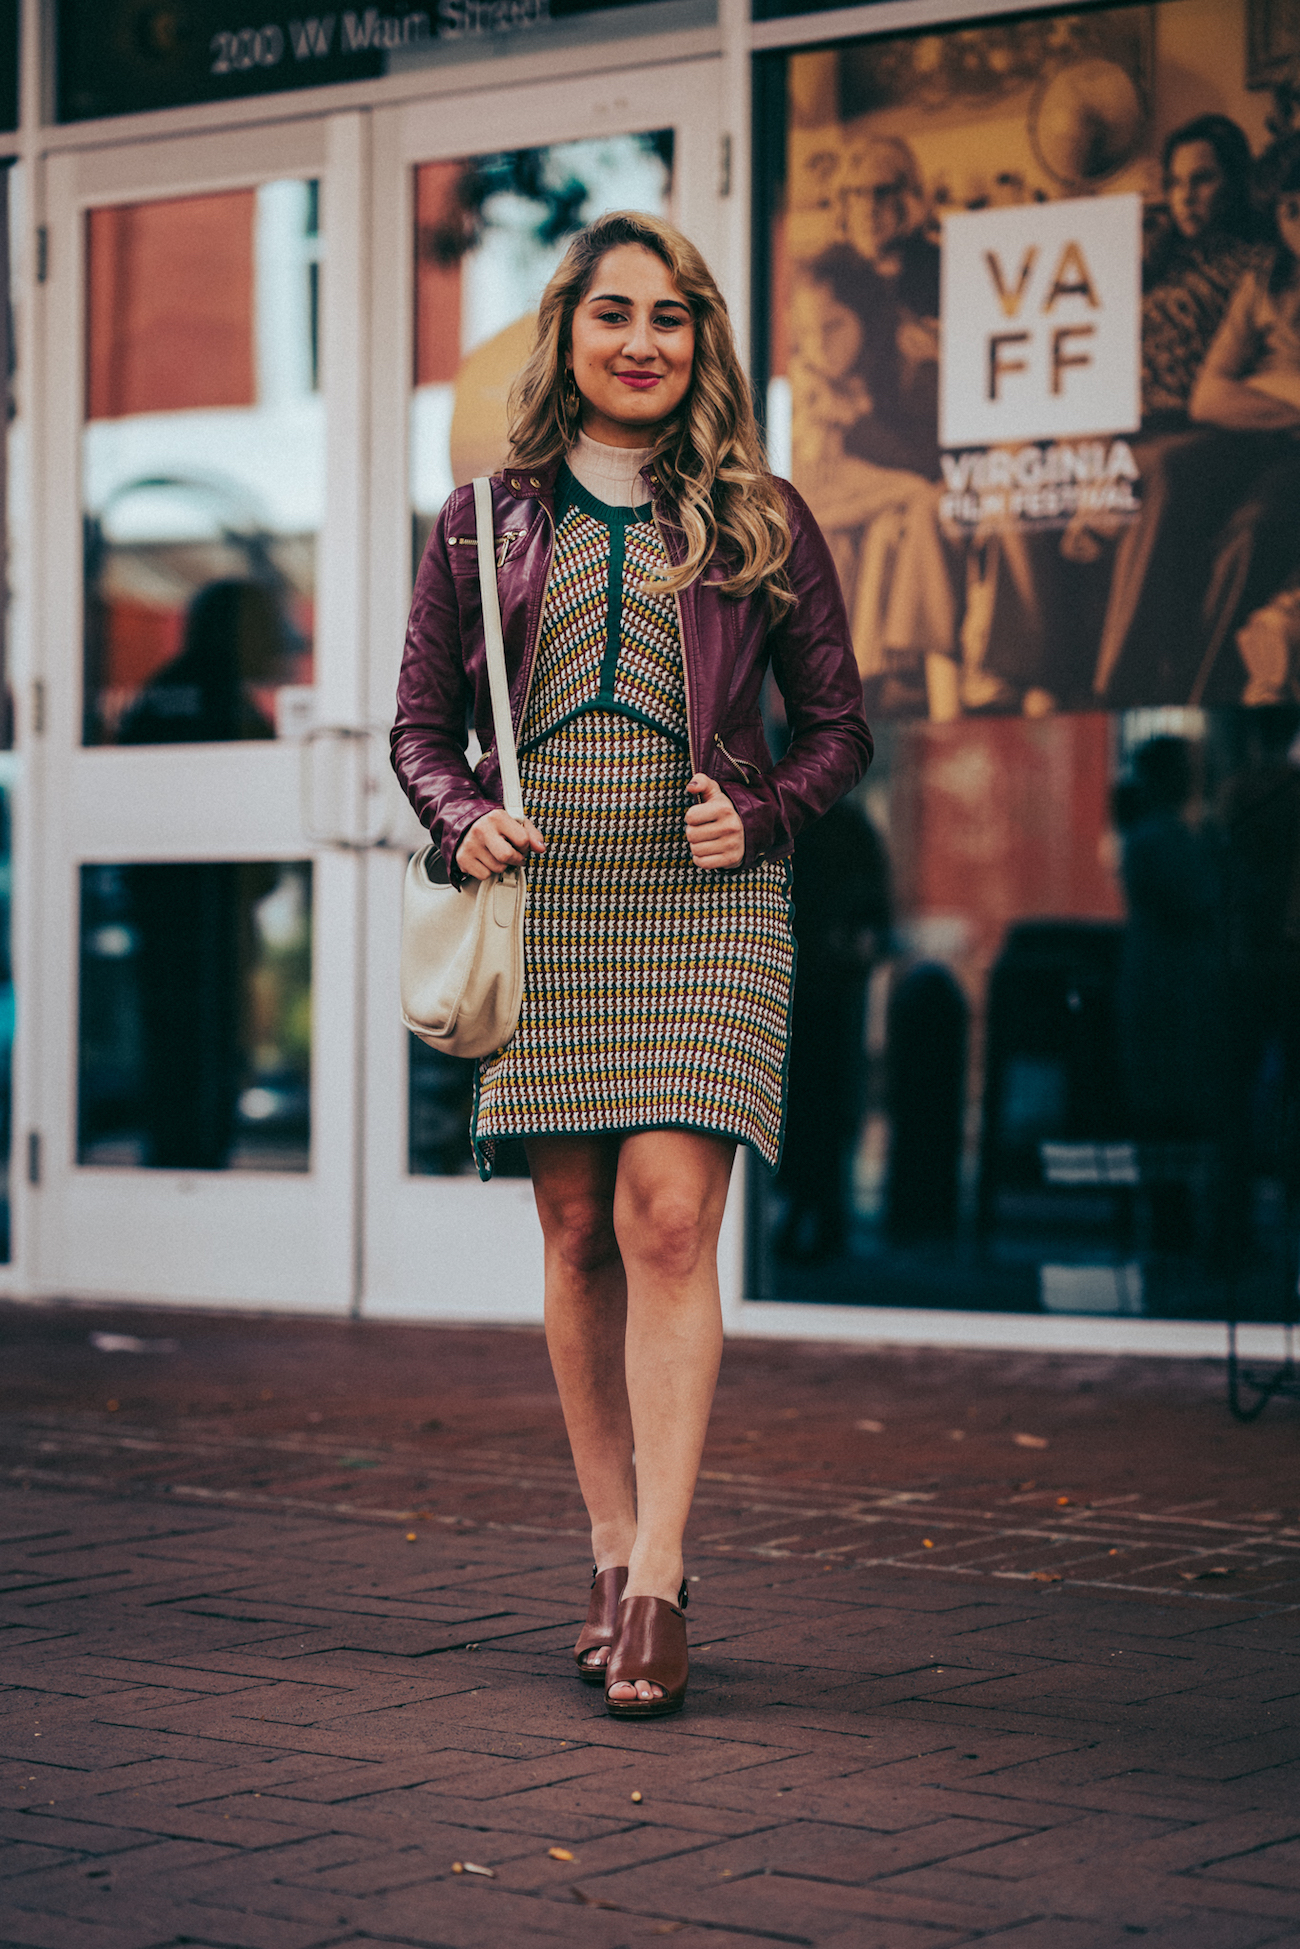 Virginia Film Festival Style | Photography by Tristan Williams for Darling Boutique